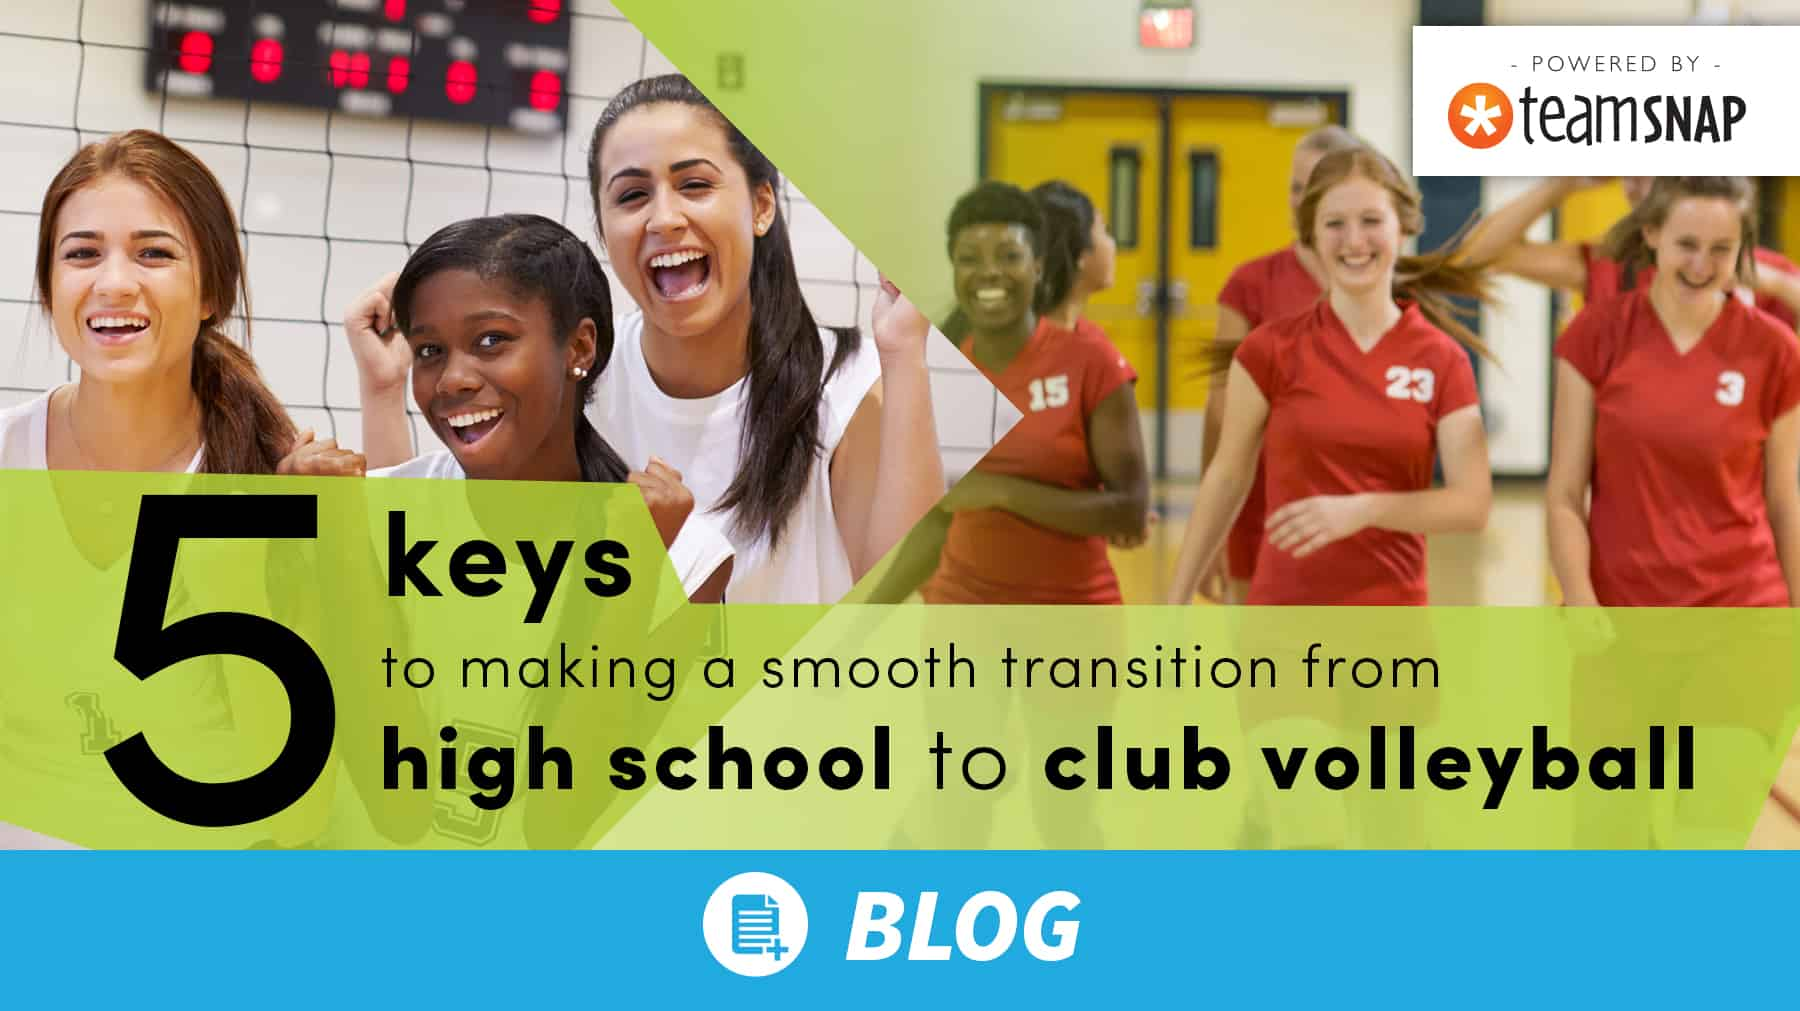 5 keys to making a smooth transition from high school to club volleyball